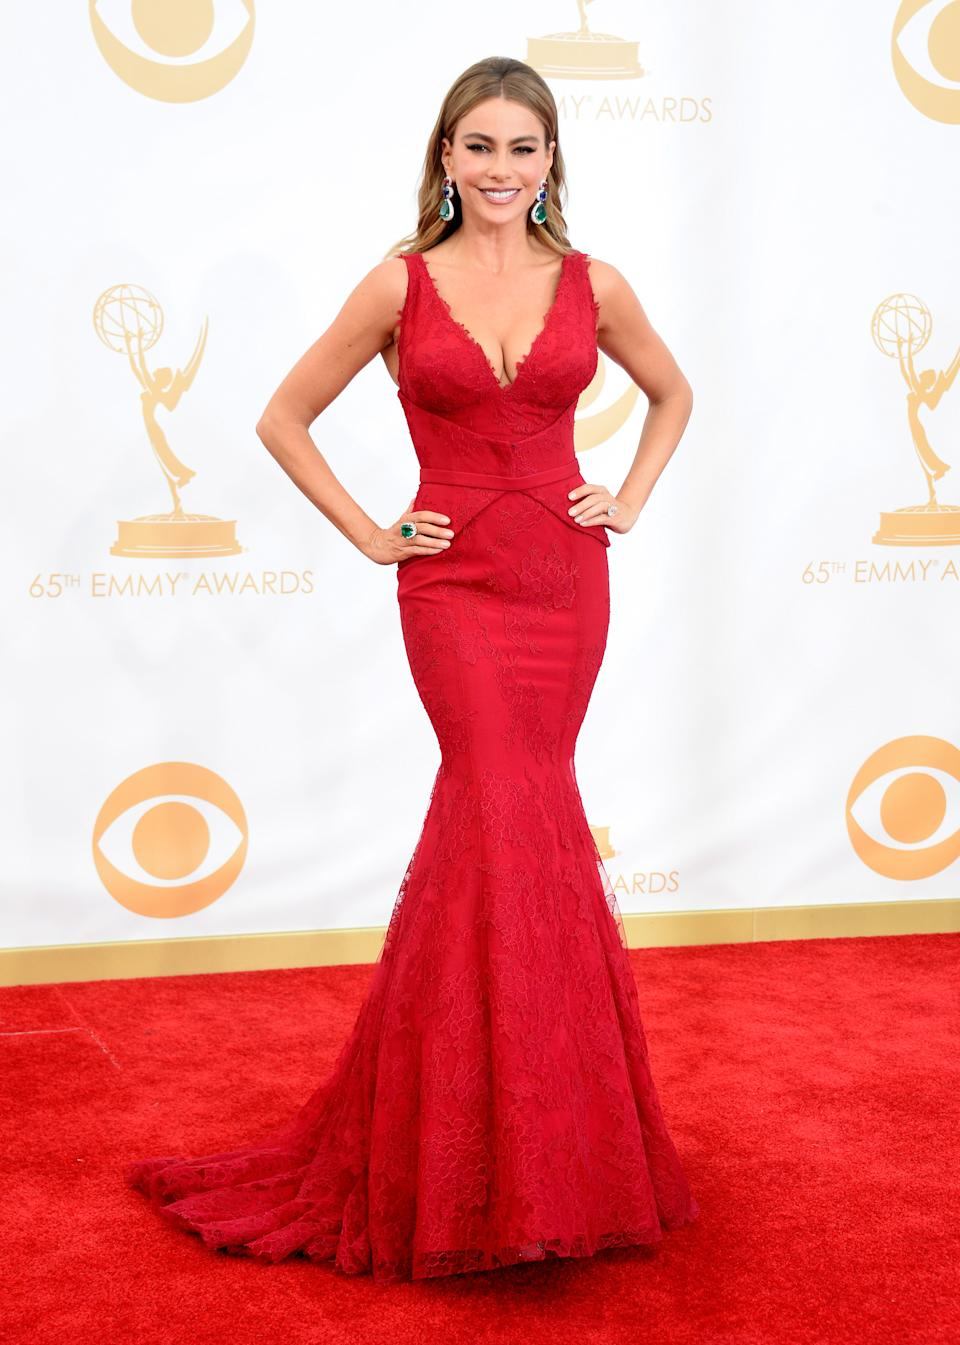 """<p>The """"Modern Family"""" star looked like a modern-day Sophia Loren in a crimson look by Vera Wang at the 2013 Emmy Awards. (Image via Getty Images).</p>"""